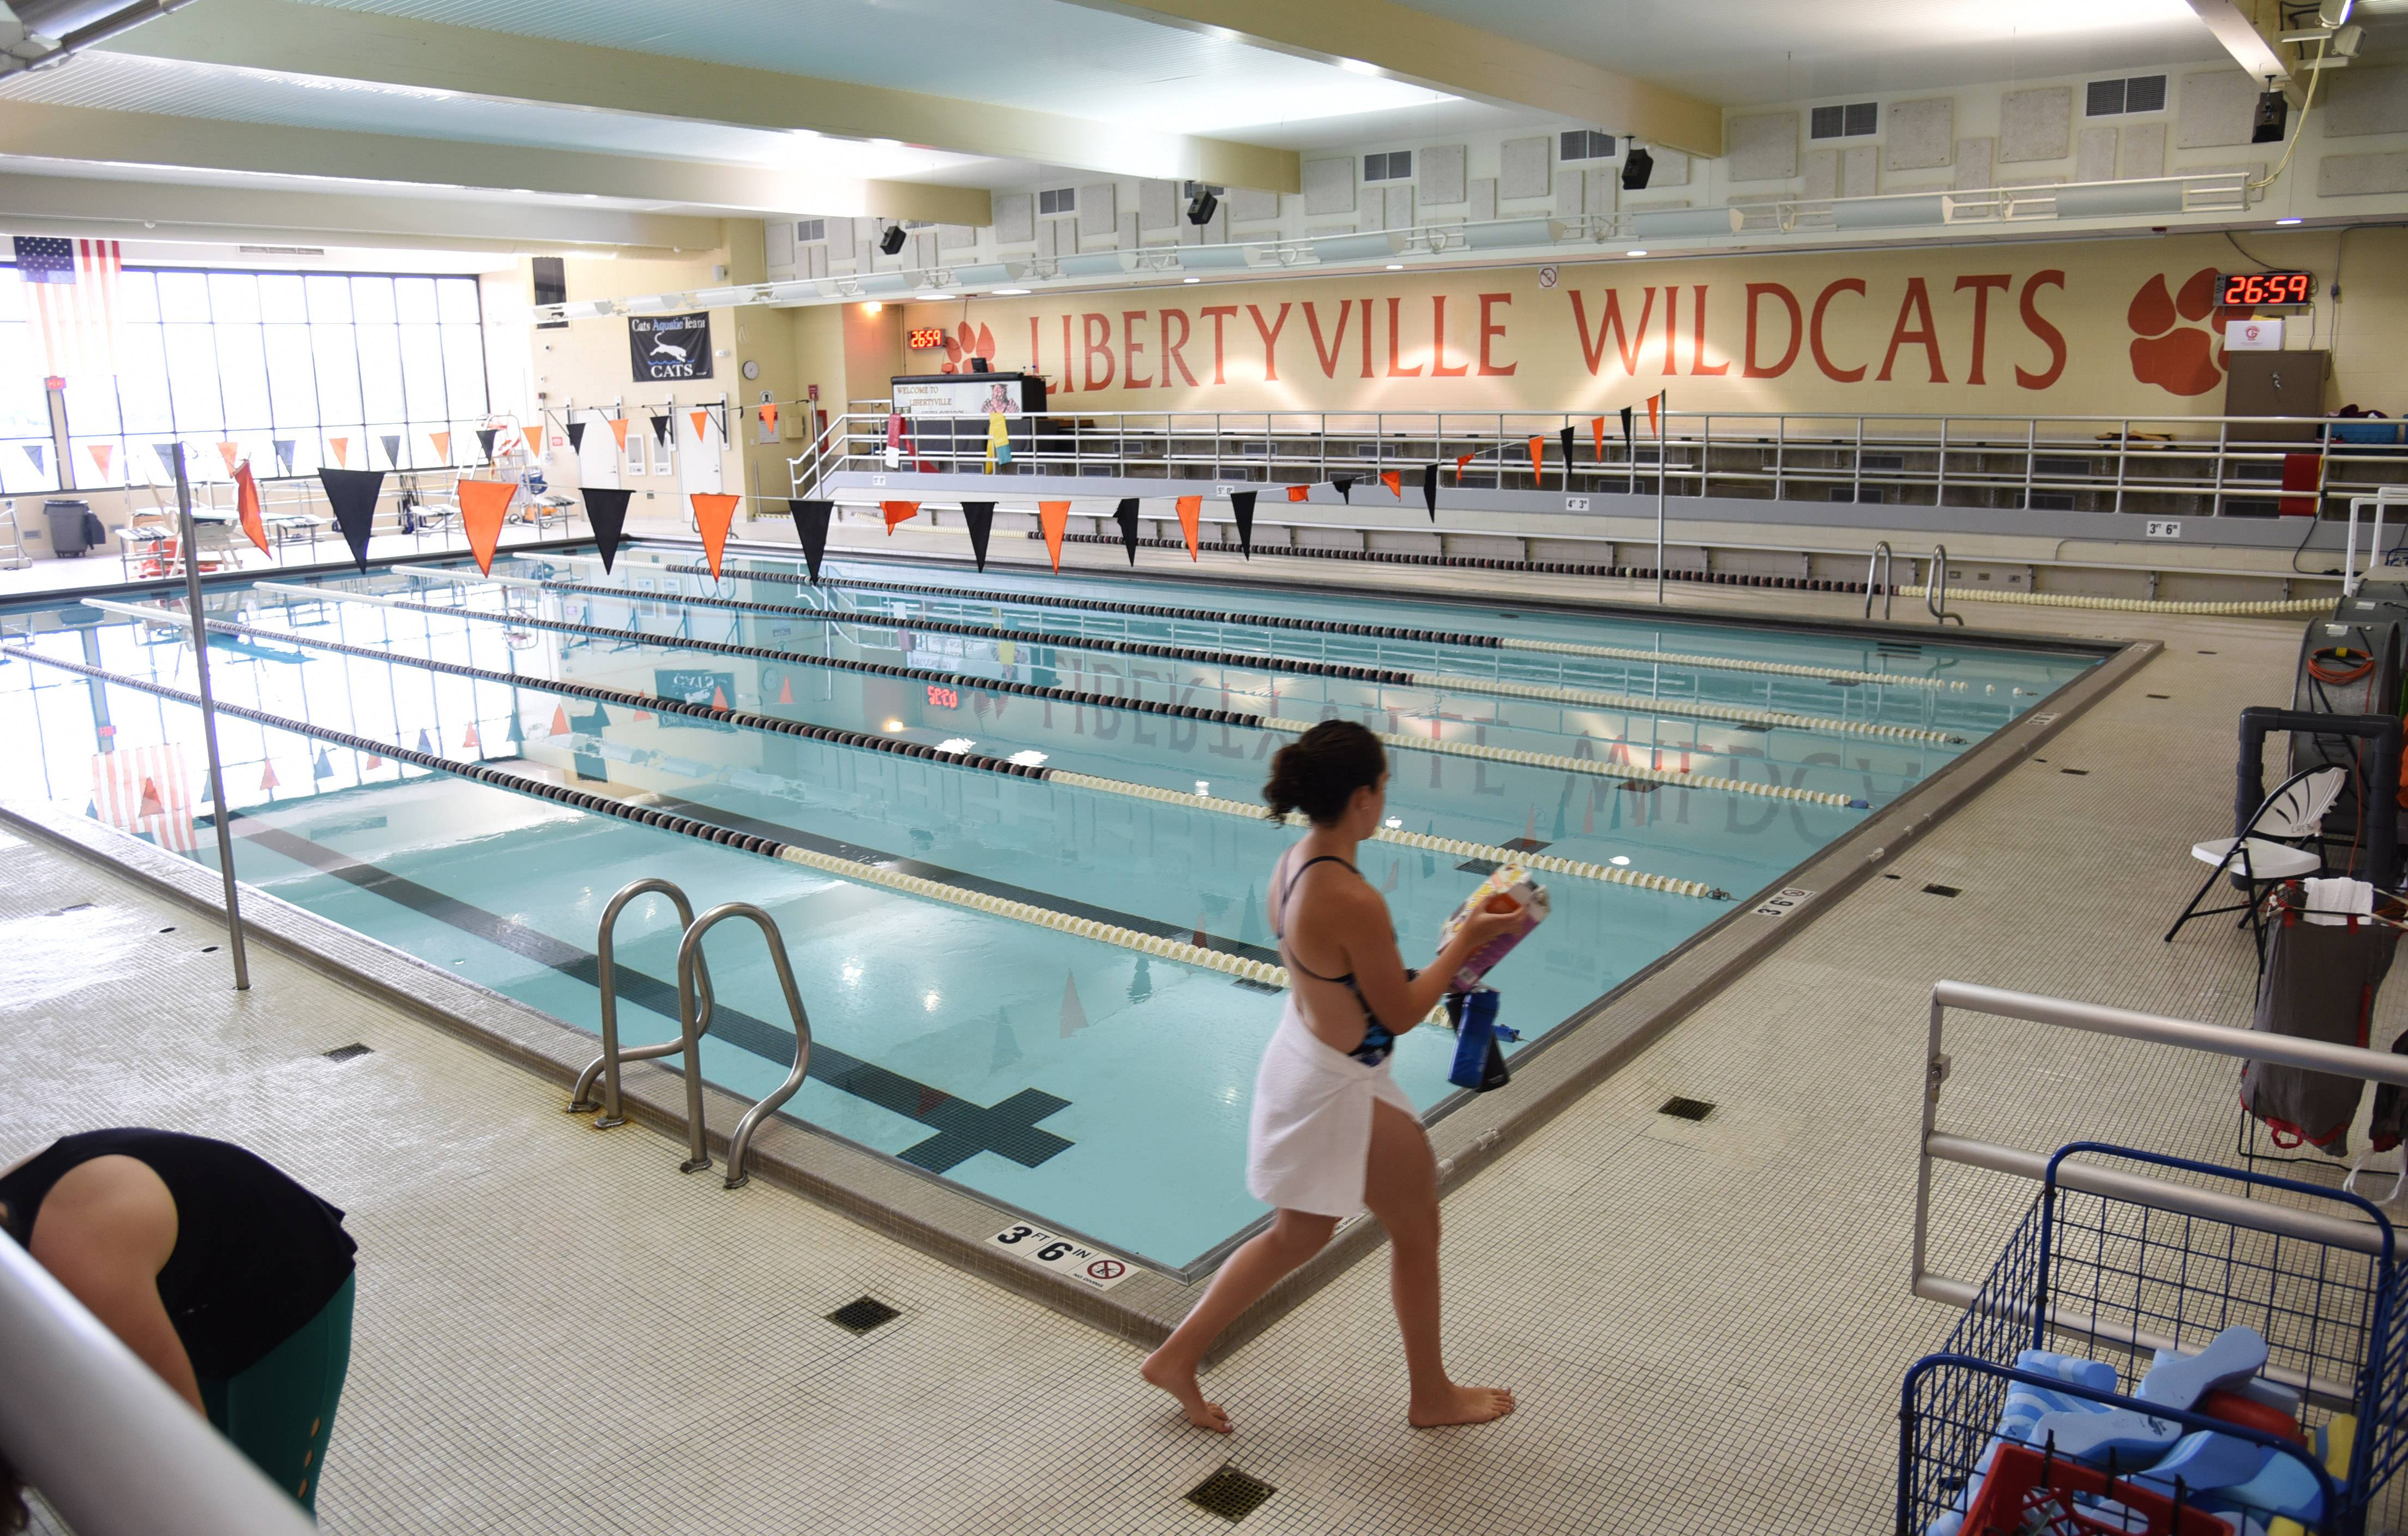 Libertyville High could turn swimming pool into new athletic space